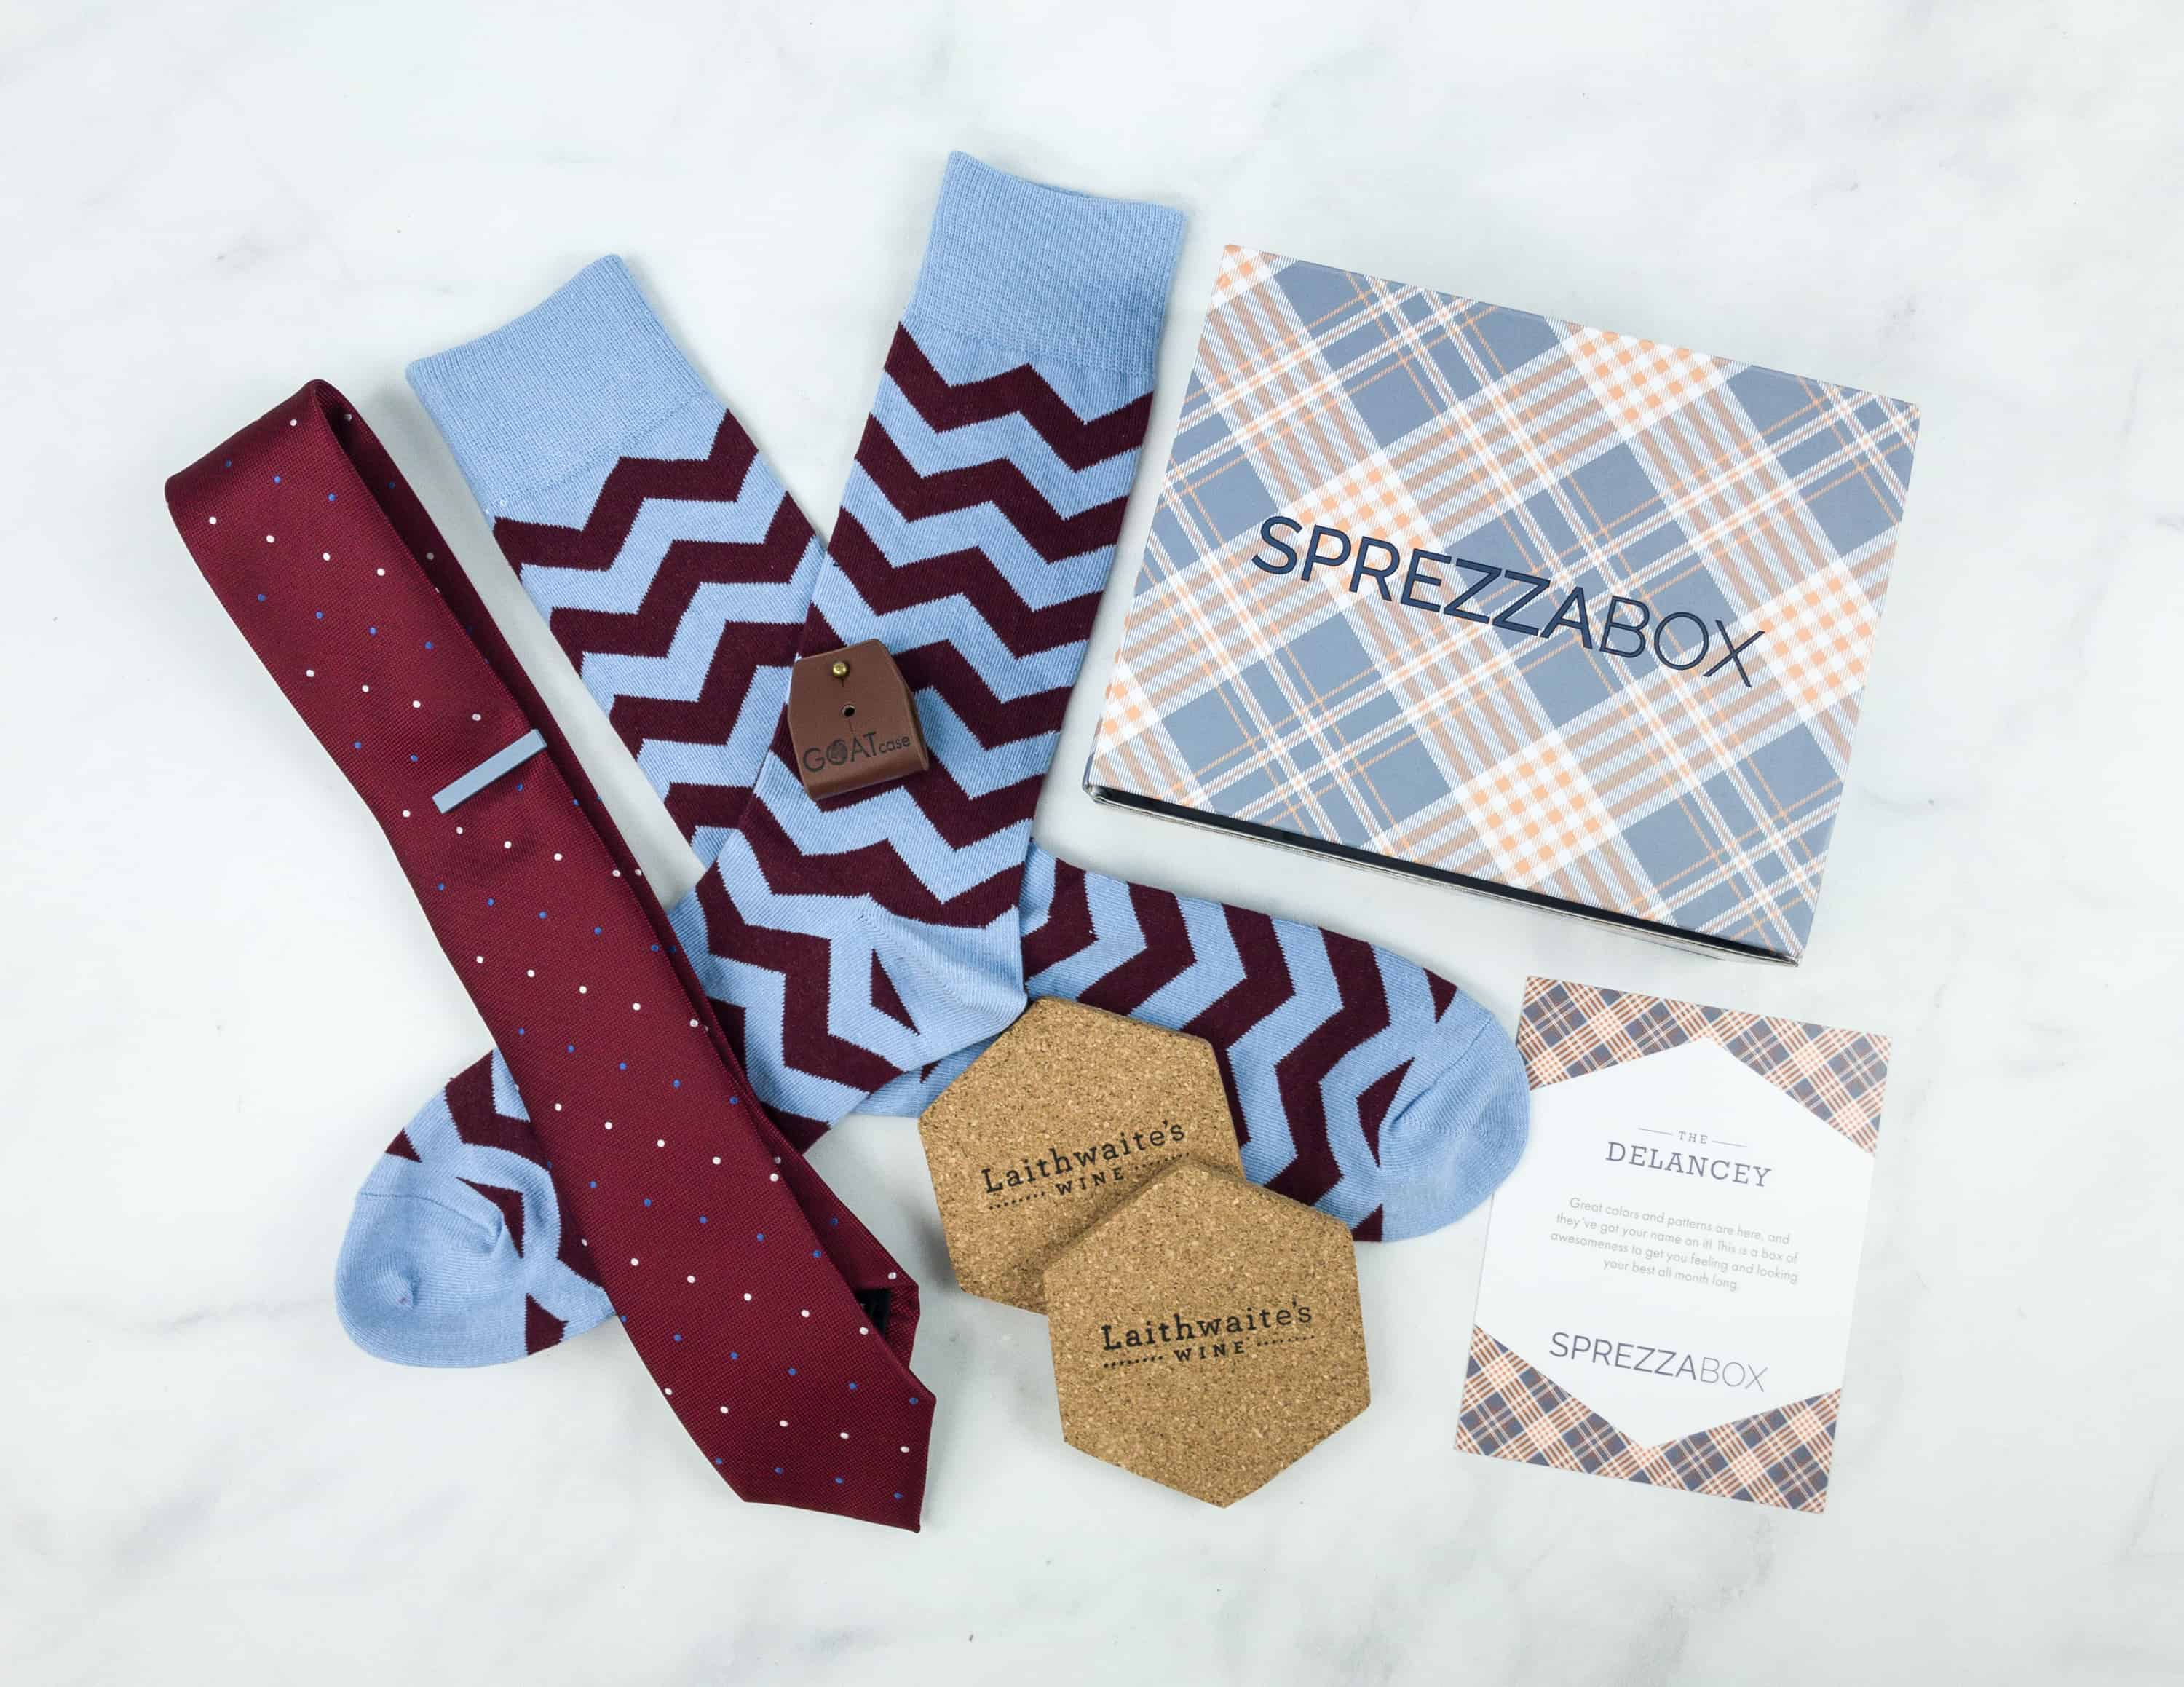 SprezzaBox October 2018 Subscription Box Review + Coupon